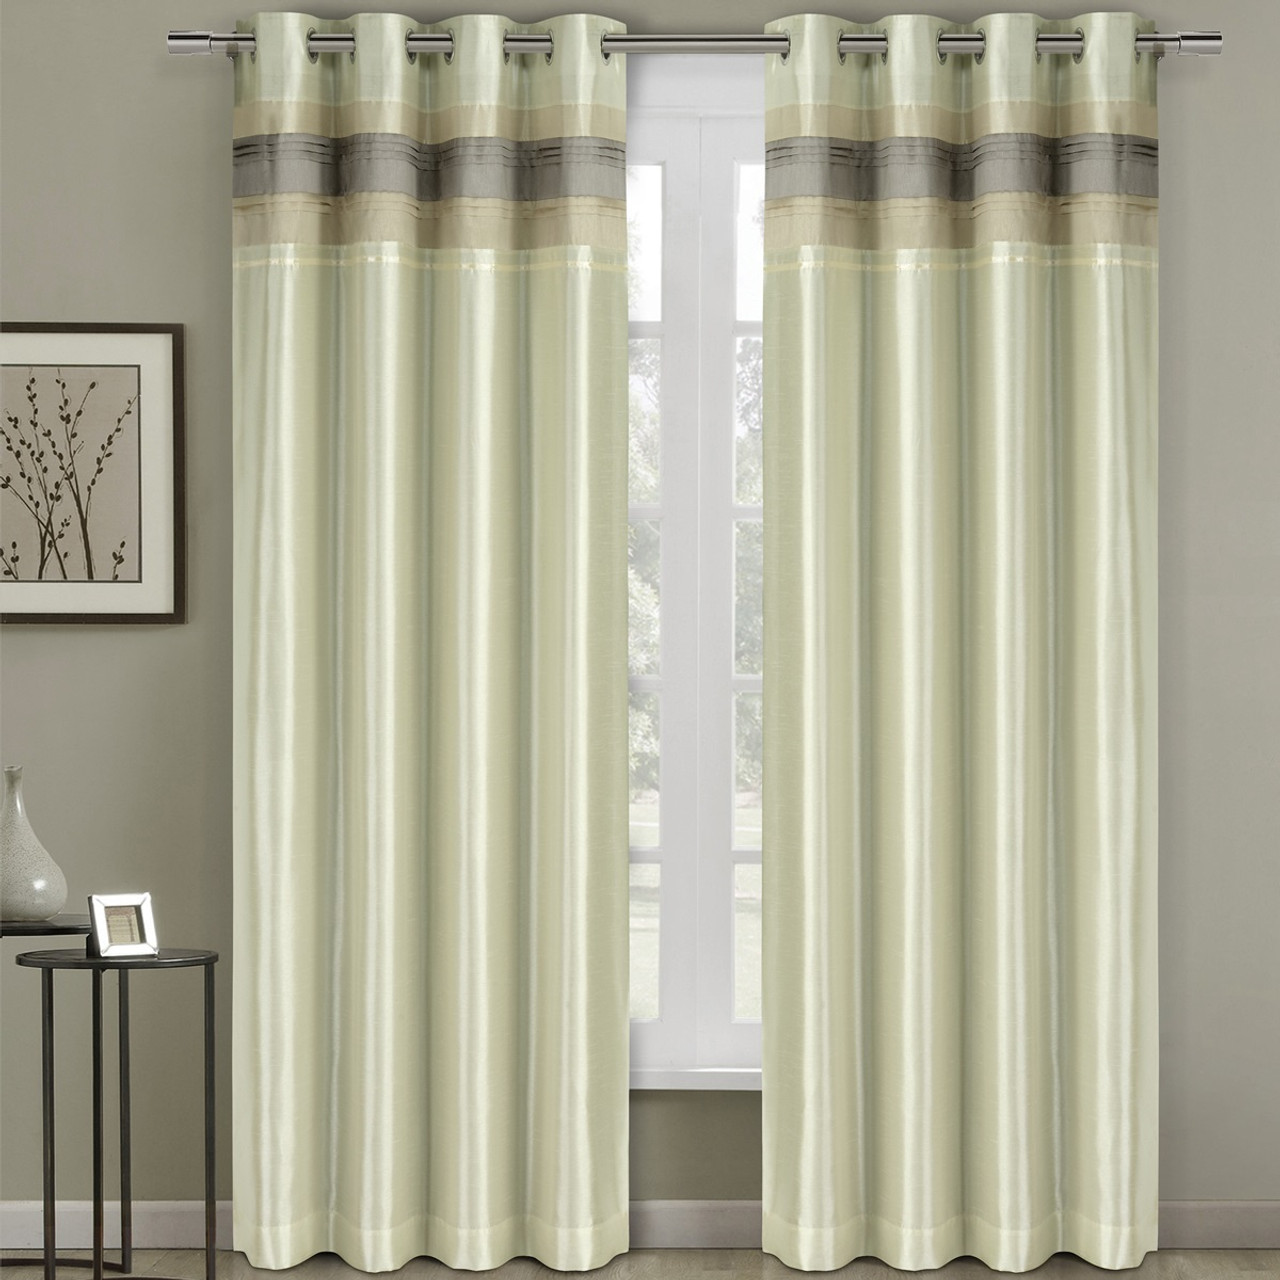 Milan Lined Blackout Curtains With Grommets Single Panel Ivory